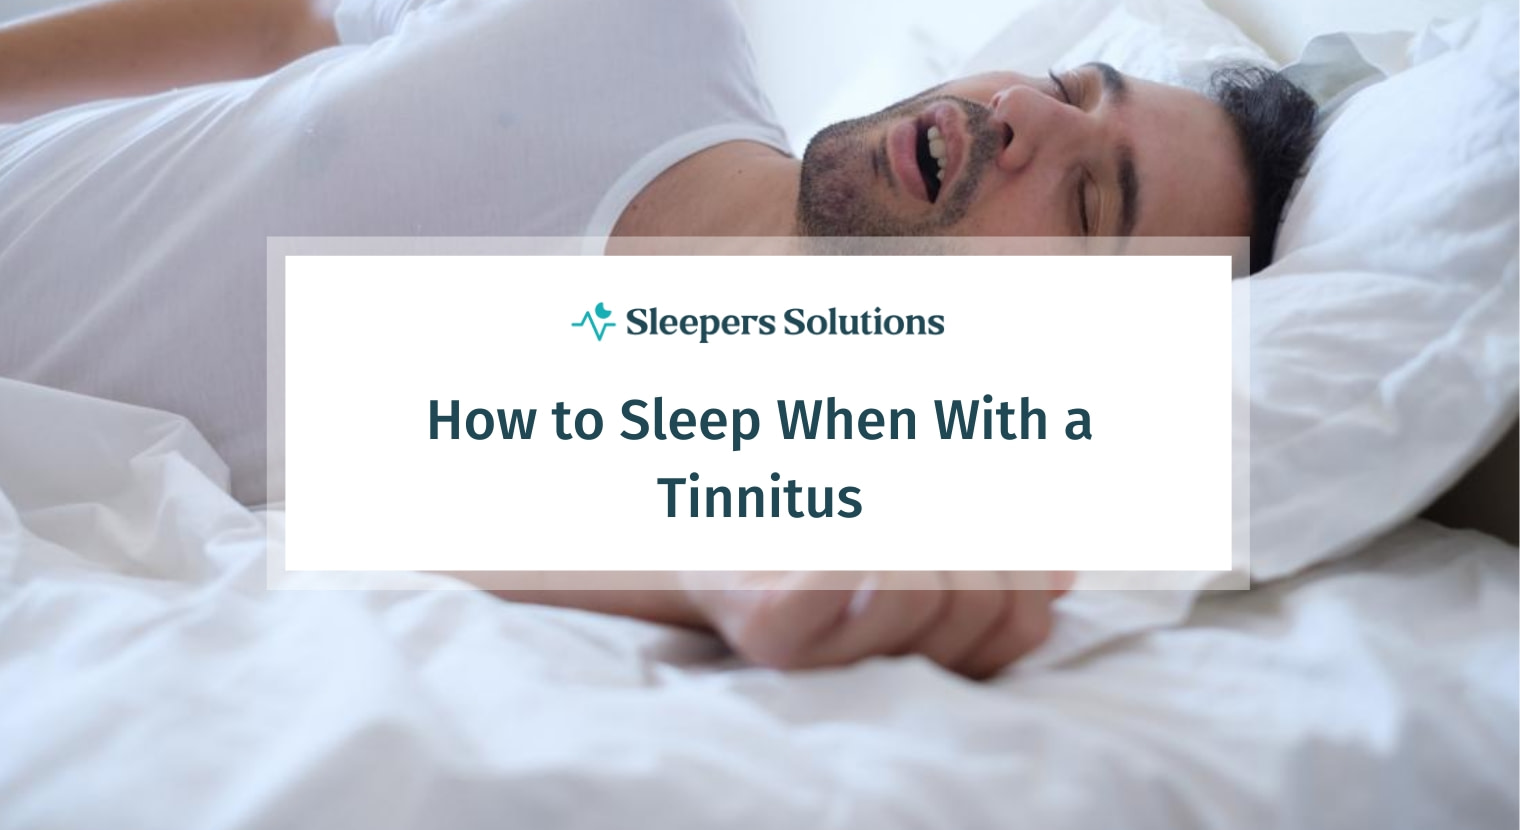 How to Sleep When With a Tinnitus